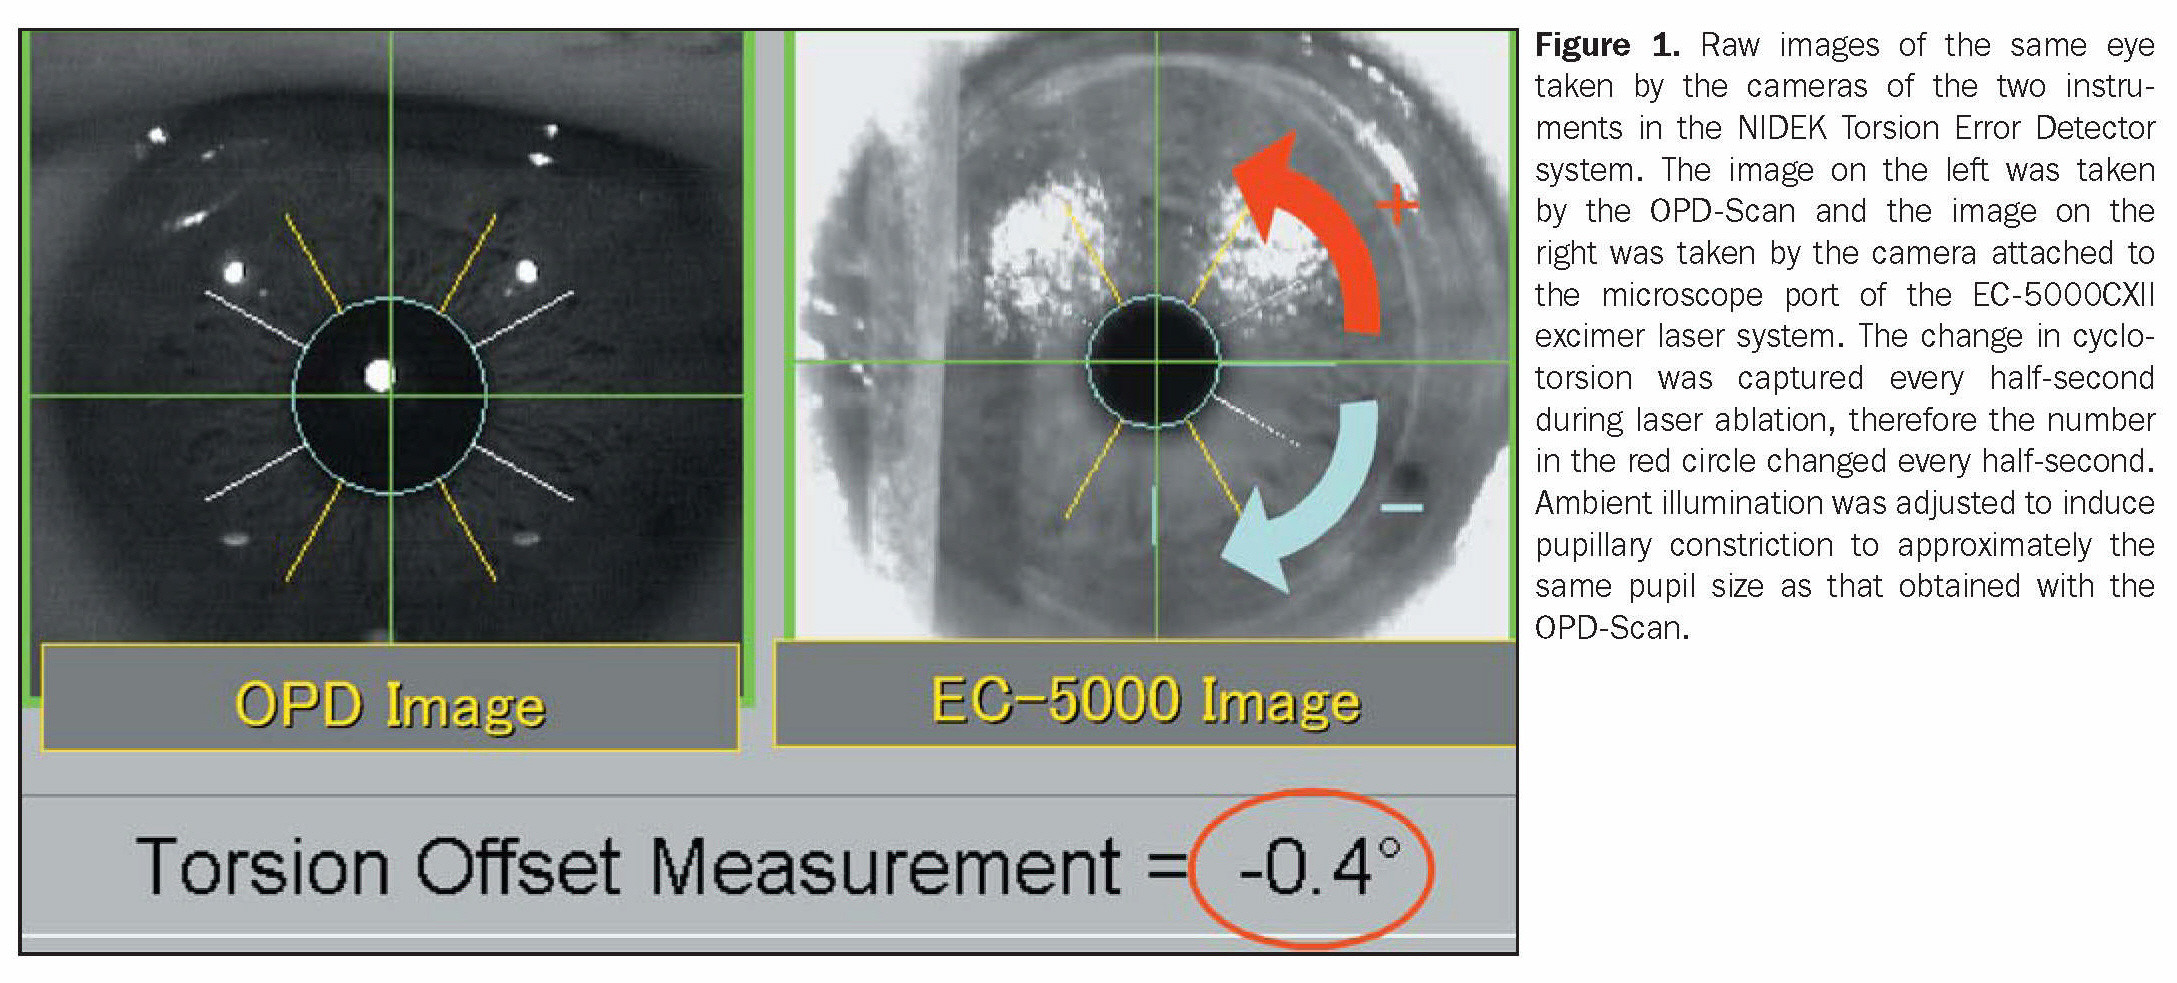 Figure 1. Raw ?mages of the same eye taken by the cameras of the two instruments in the NIDEK Torsion Error Detector system. The image on the left was taken by the OPD-Scan and the image on the right was taken by the camera attached to the microscope port of the EC-5000CXII excimer laser system. The change in cyclotorsion was captured every half-second during laser ablation, therefore the number in the red circle changed every half-second. Ambient illumination was adjusted to induce pupillary constriction to approximately the same pupil size as that obtained with the OPD-Scan.